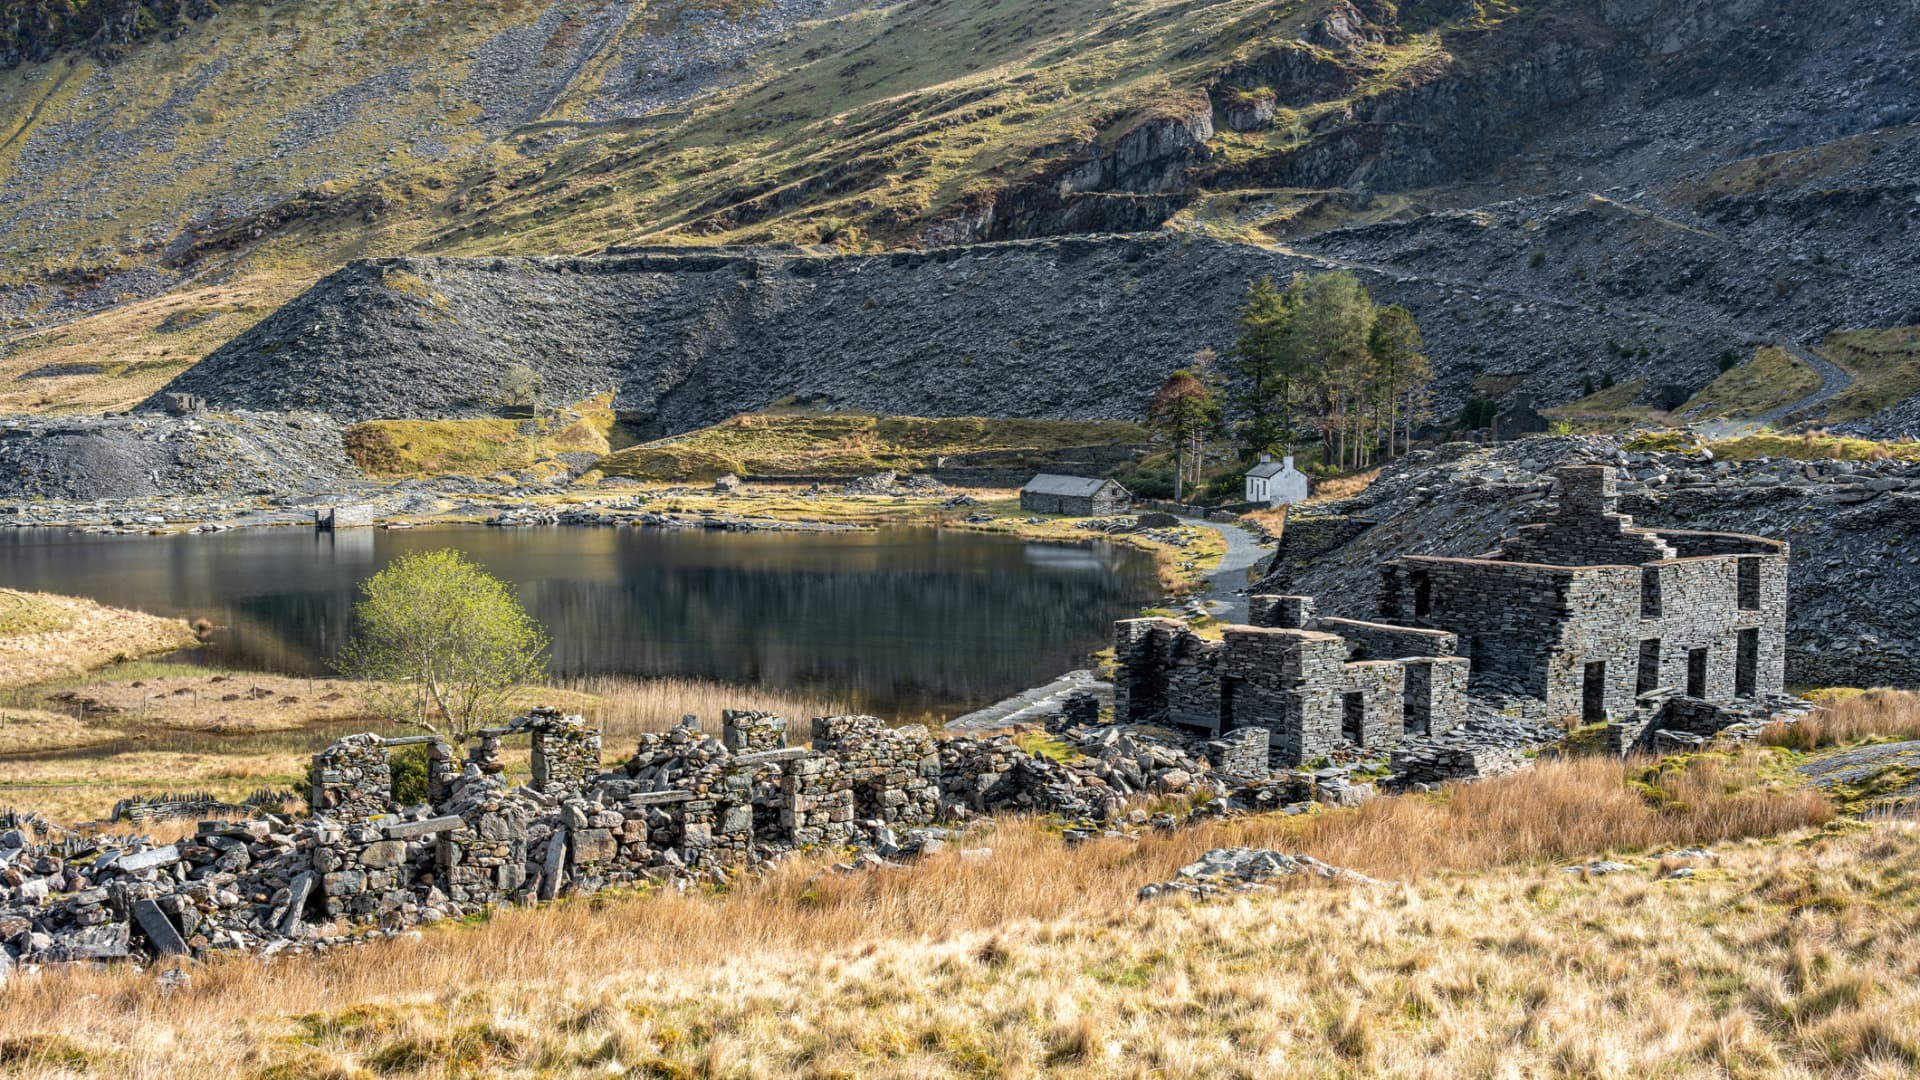 An abandoned quarry in Snowdonia, Wales, United Kingdom.